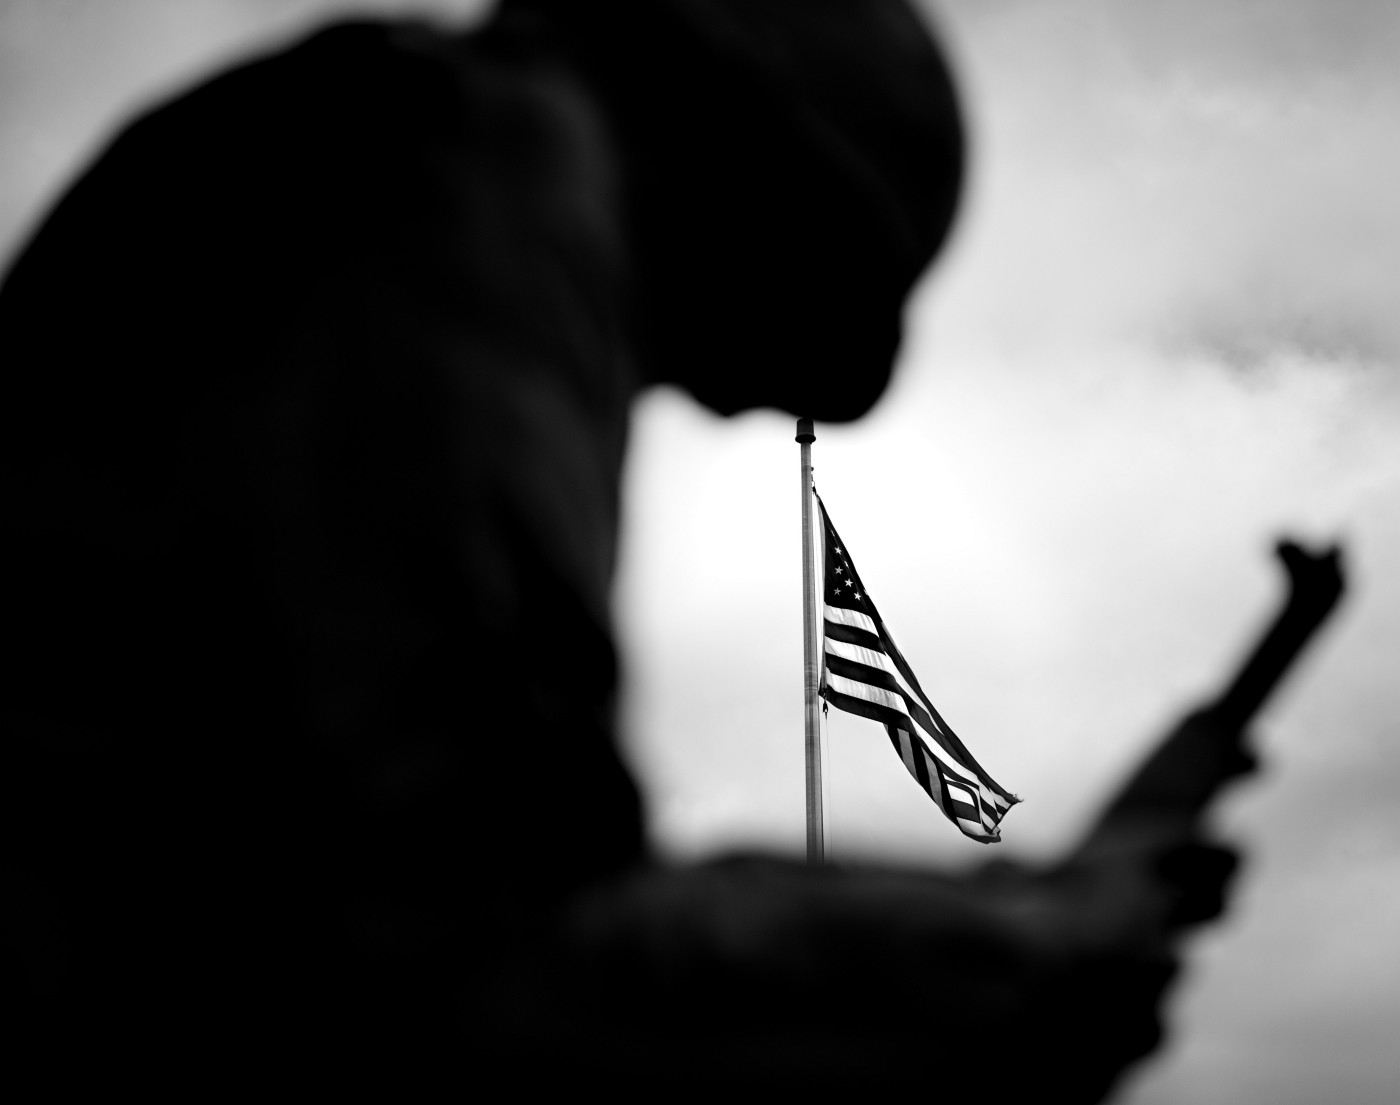 Statue of a solider with the American flag in the background.